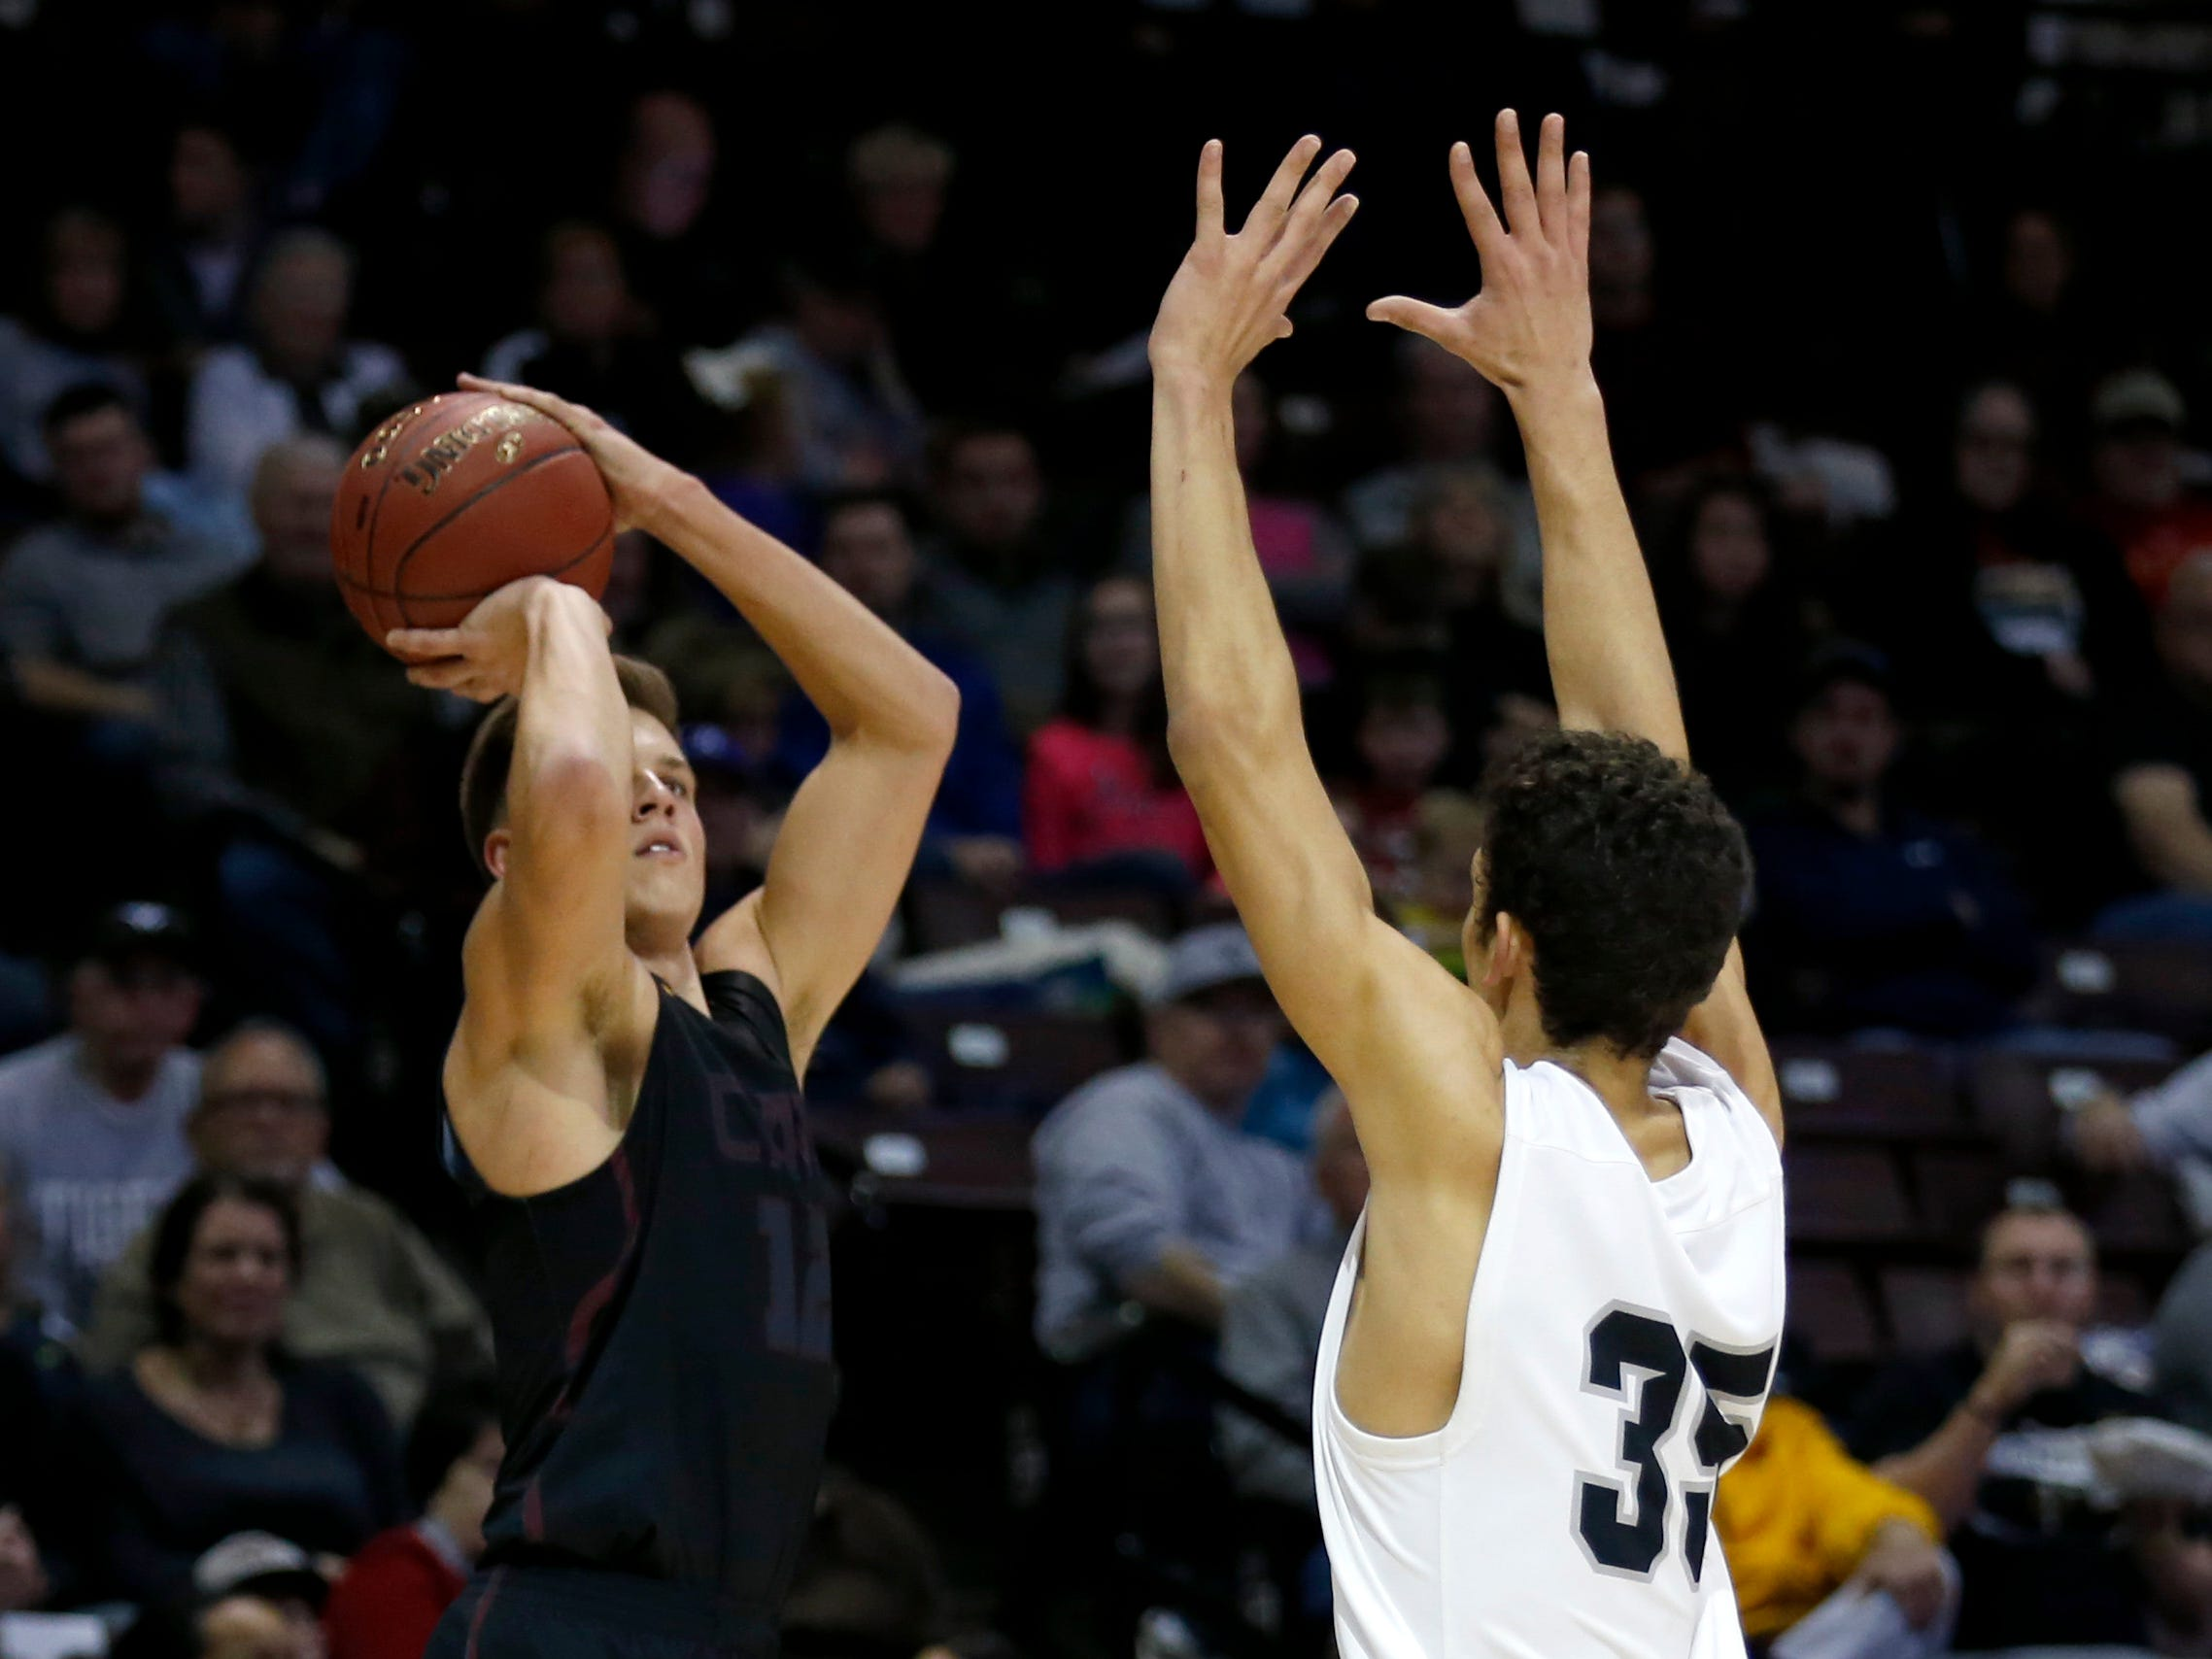 The Willard Tigers take on the Logan-Rogersville Wildcats in a semi-final Blue Division game during the 2018 Blue and Gold Tournament at JQH Arena on Friday, Dec. 28, 2018.